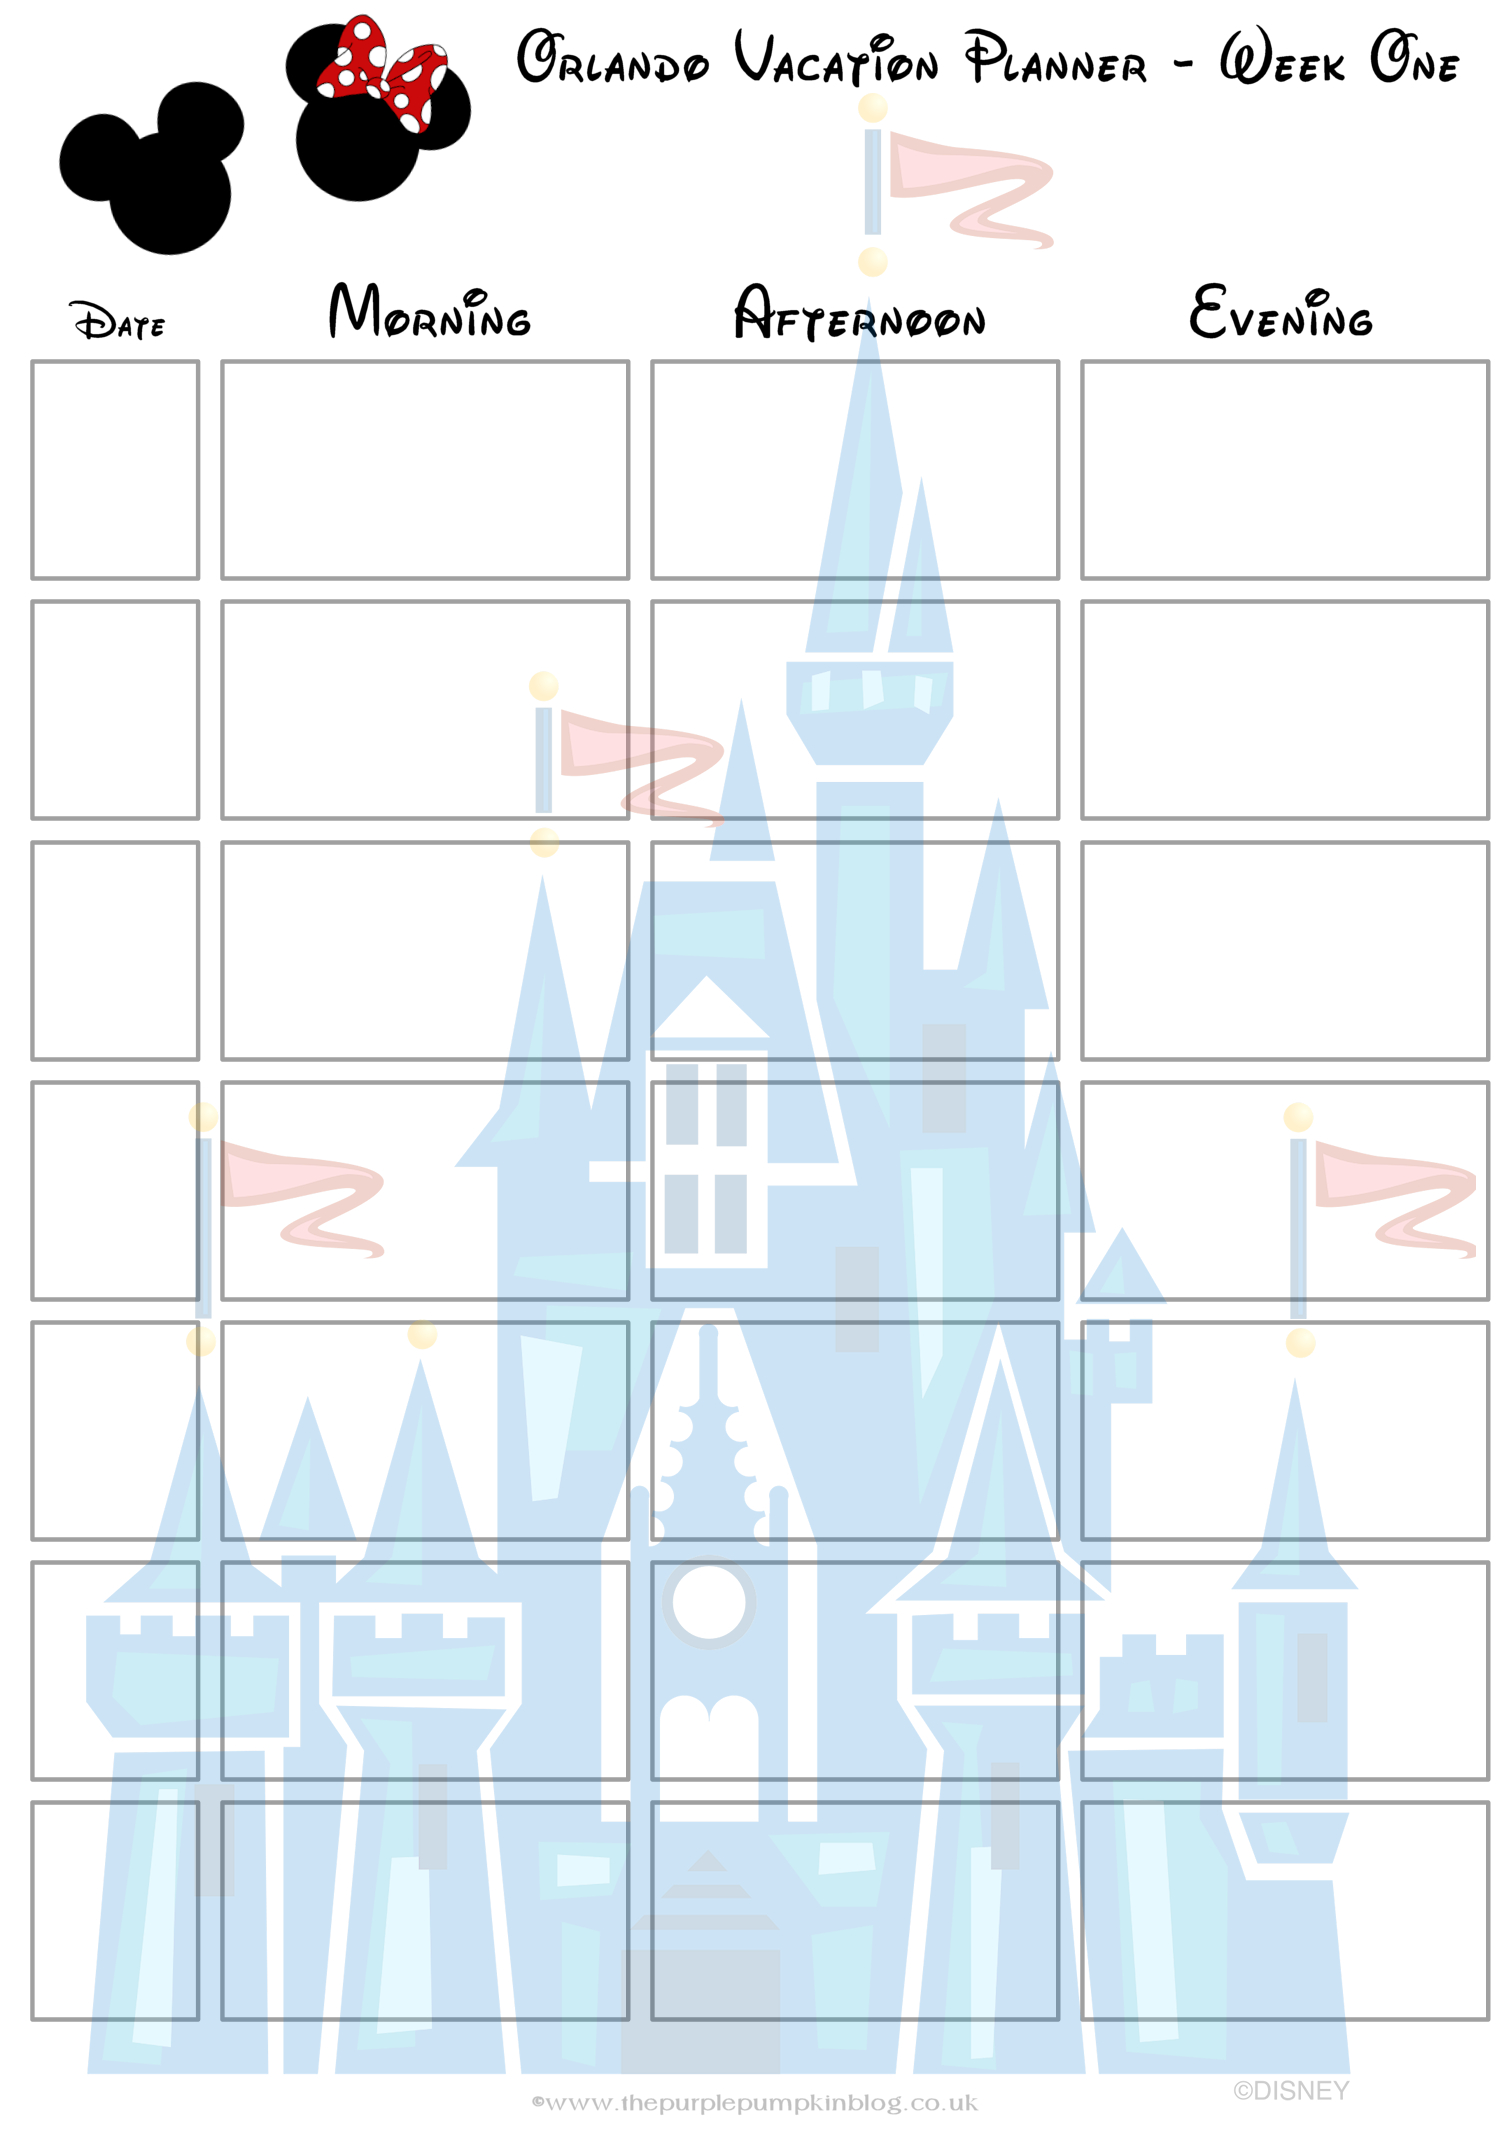 Orlando, Walt Disney World Vacation Planner | Disney